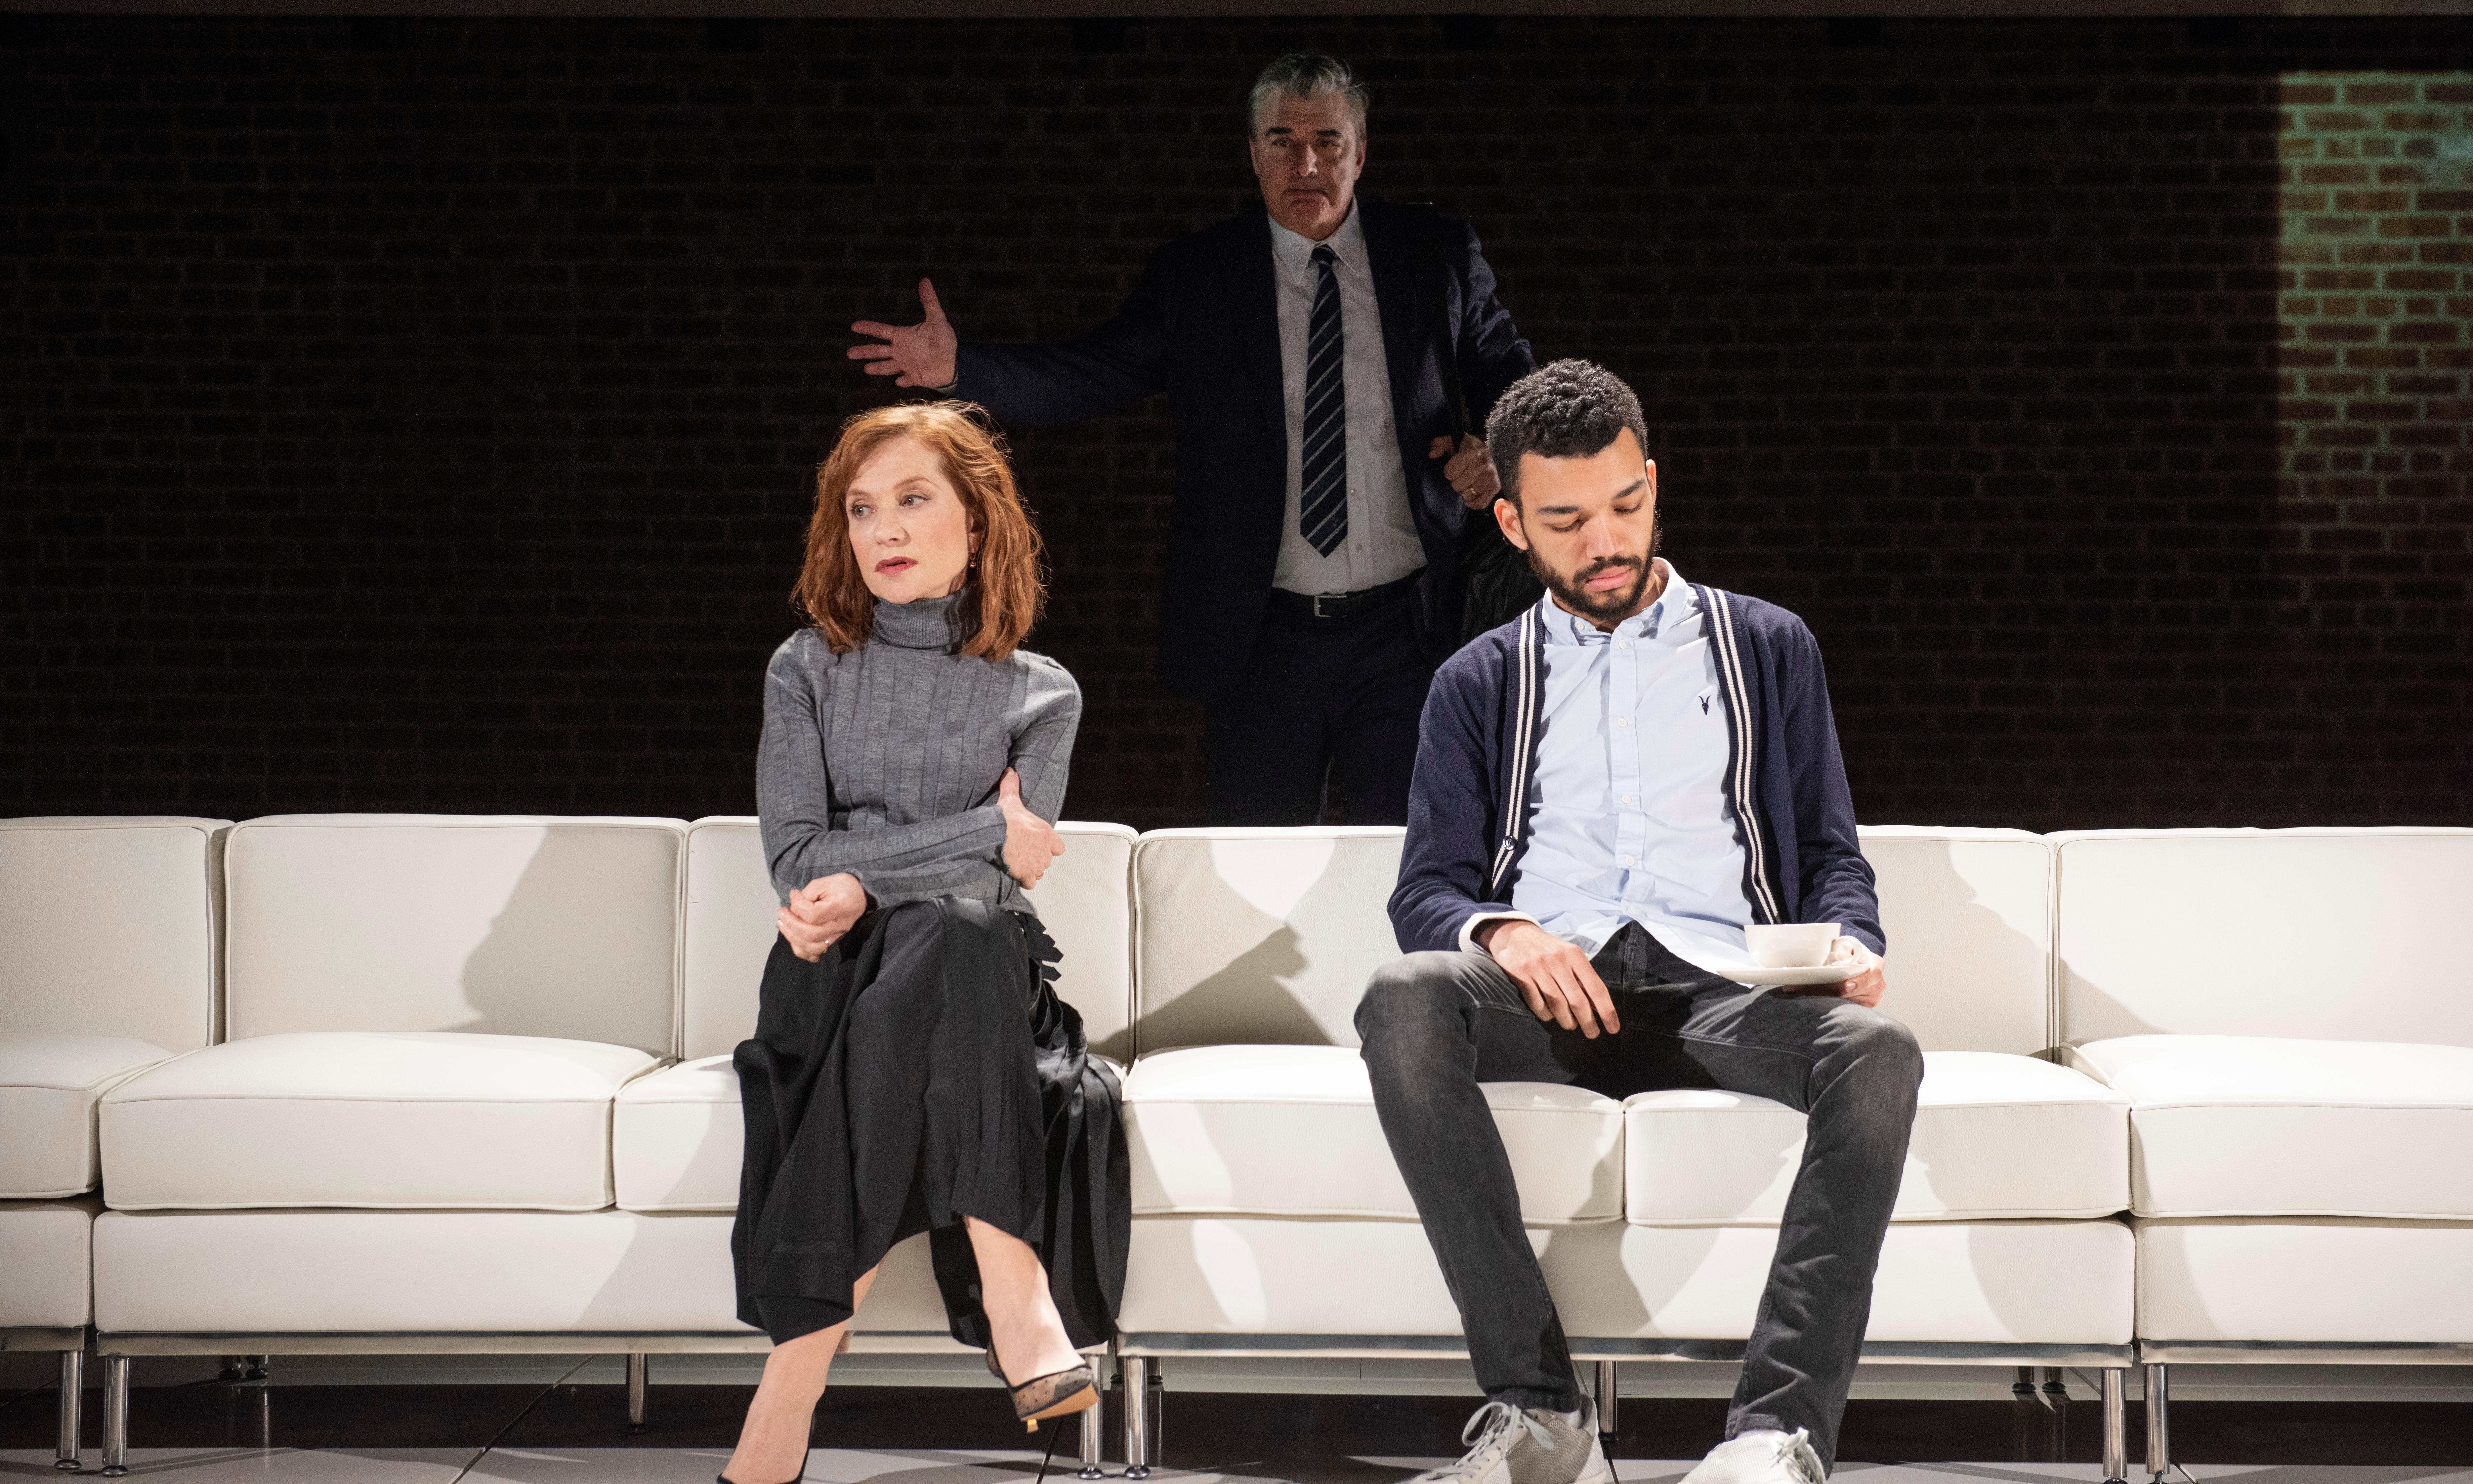 The Mother review – Isabelle Huppert shines in otherwise stale play